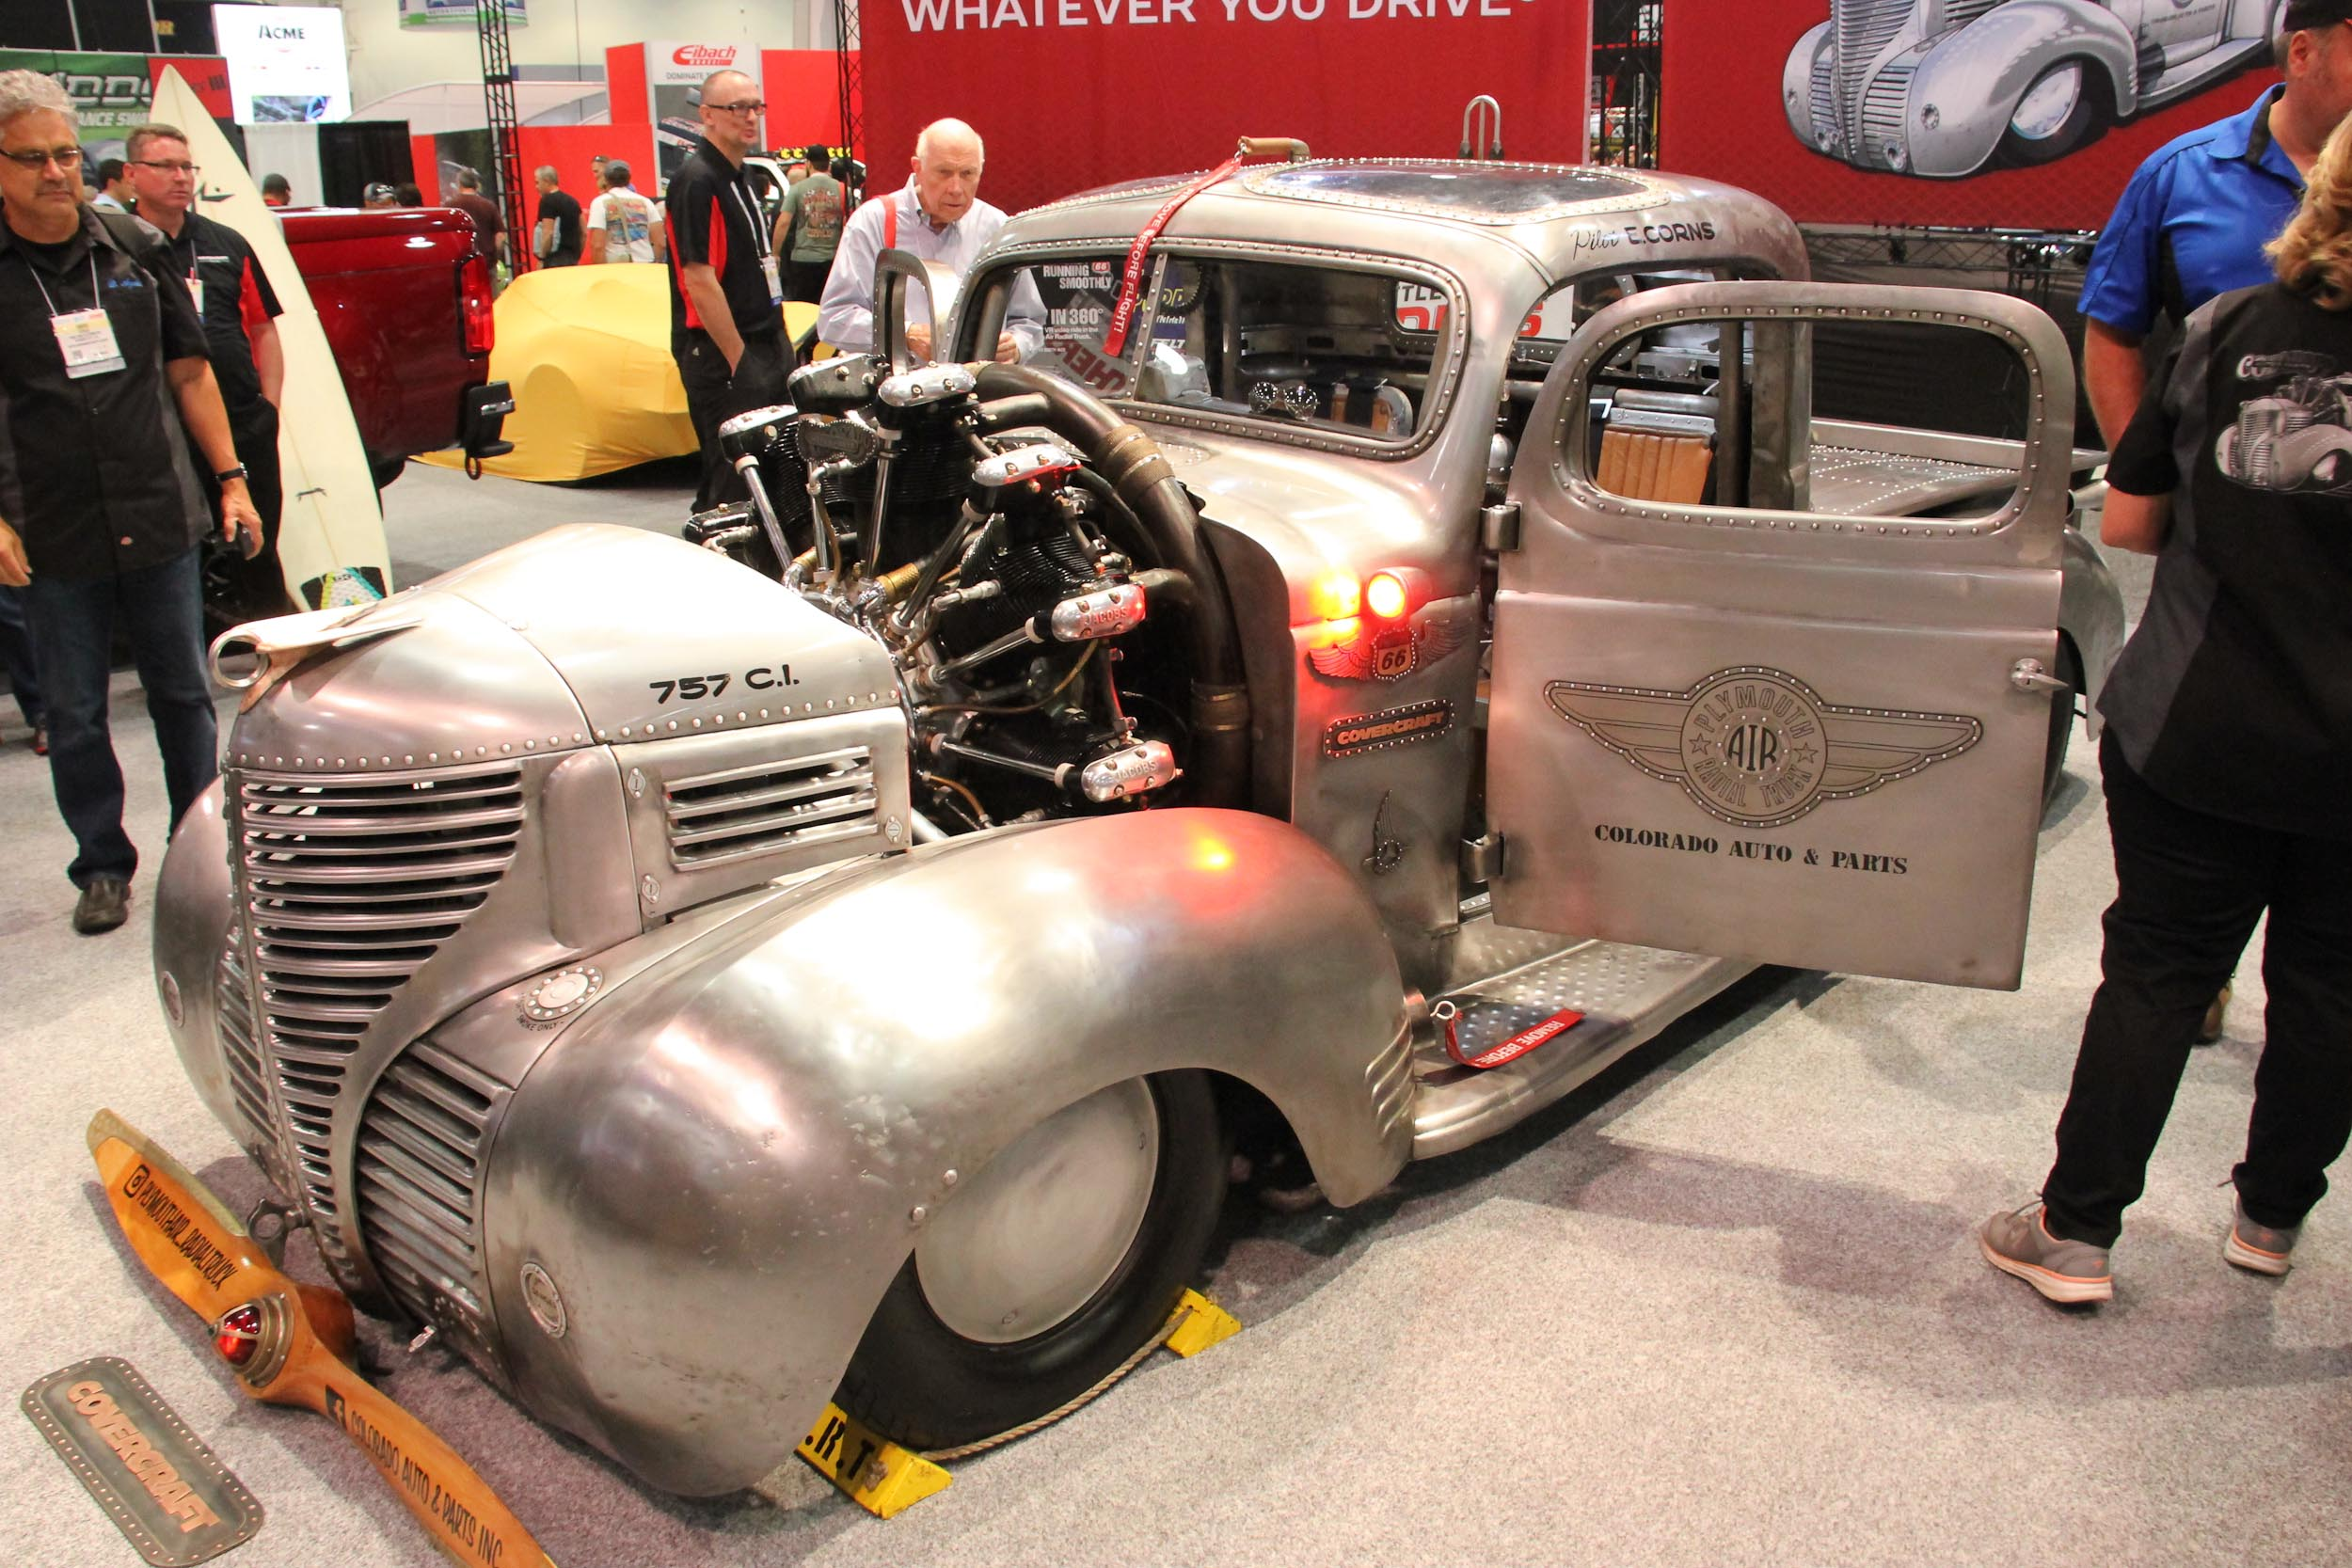 SEMA 2017: Gary Corns Wild Radial Engine-Powered '39 Plymouth Truck